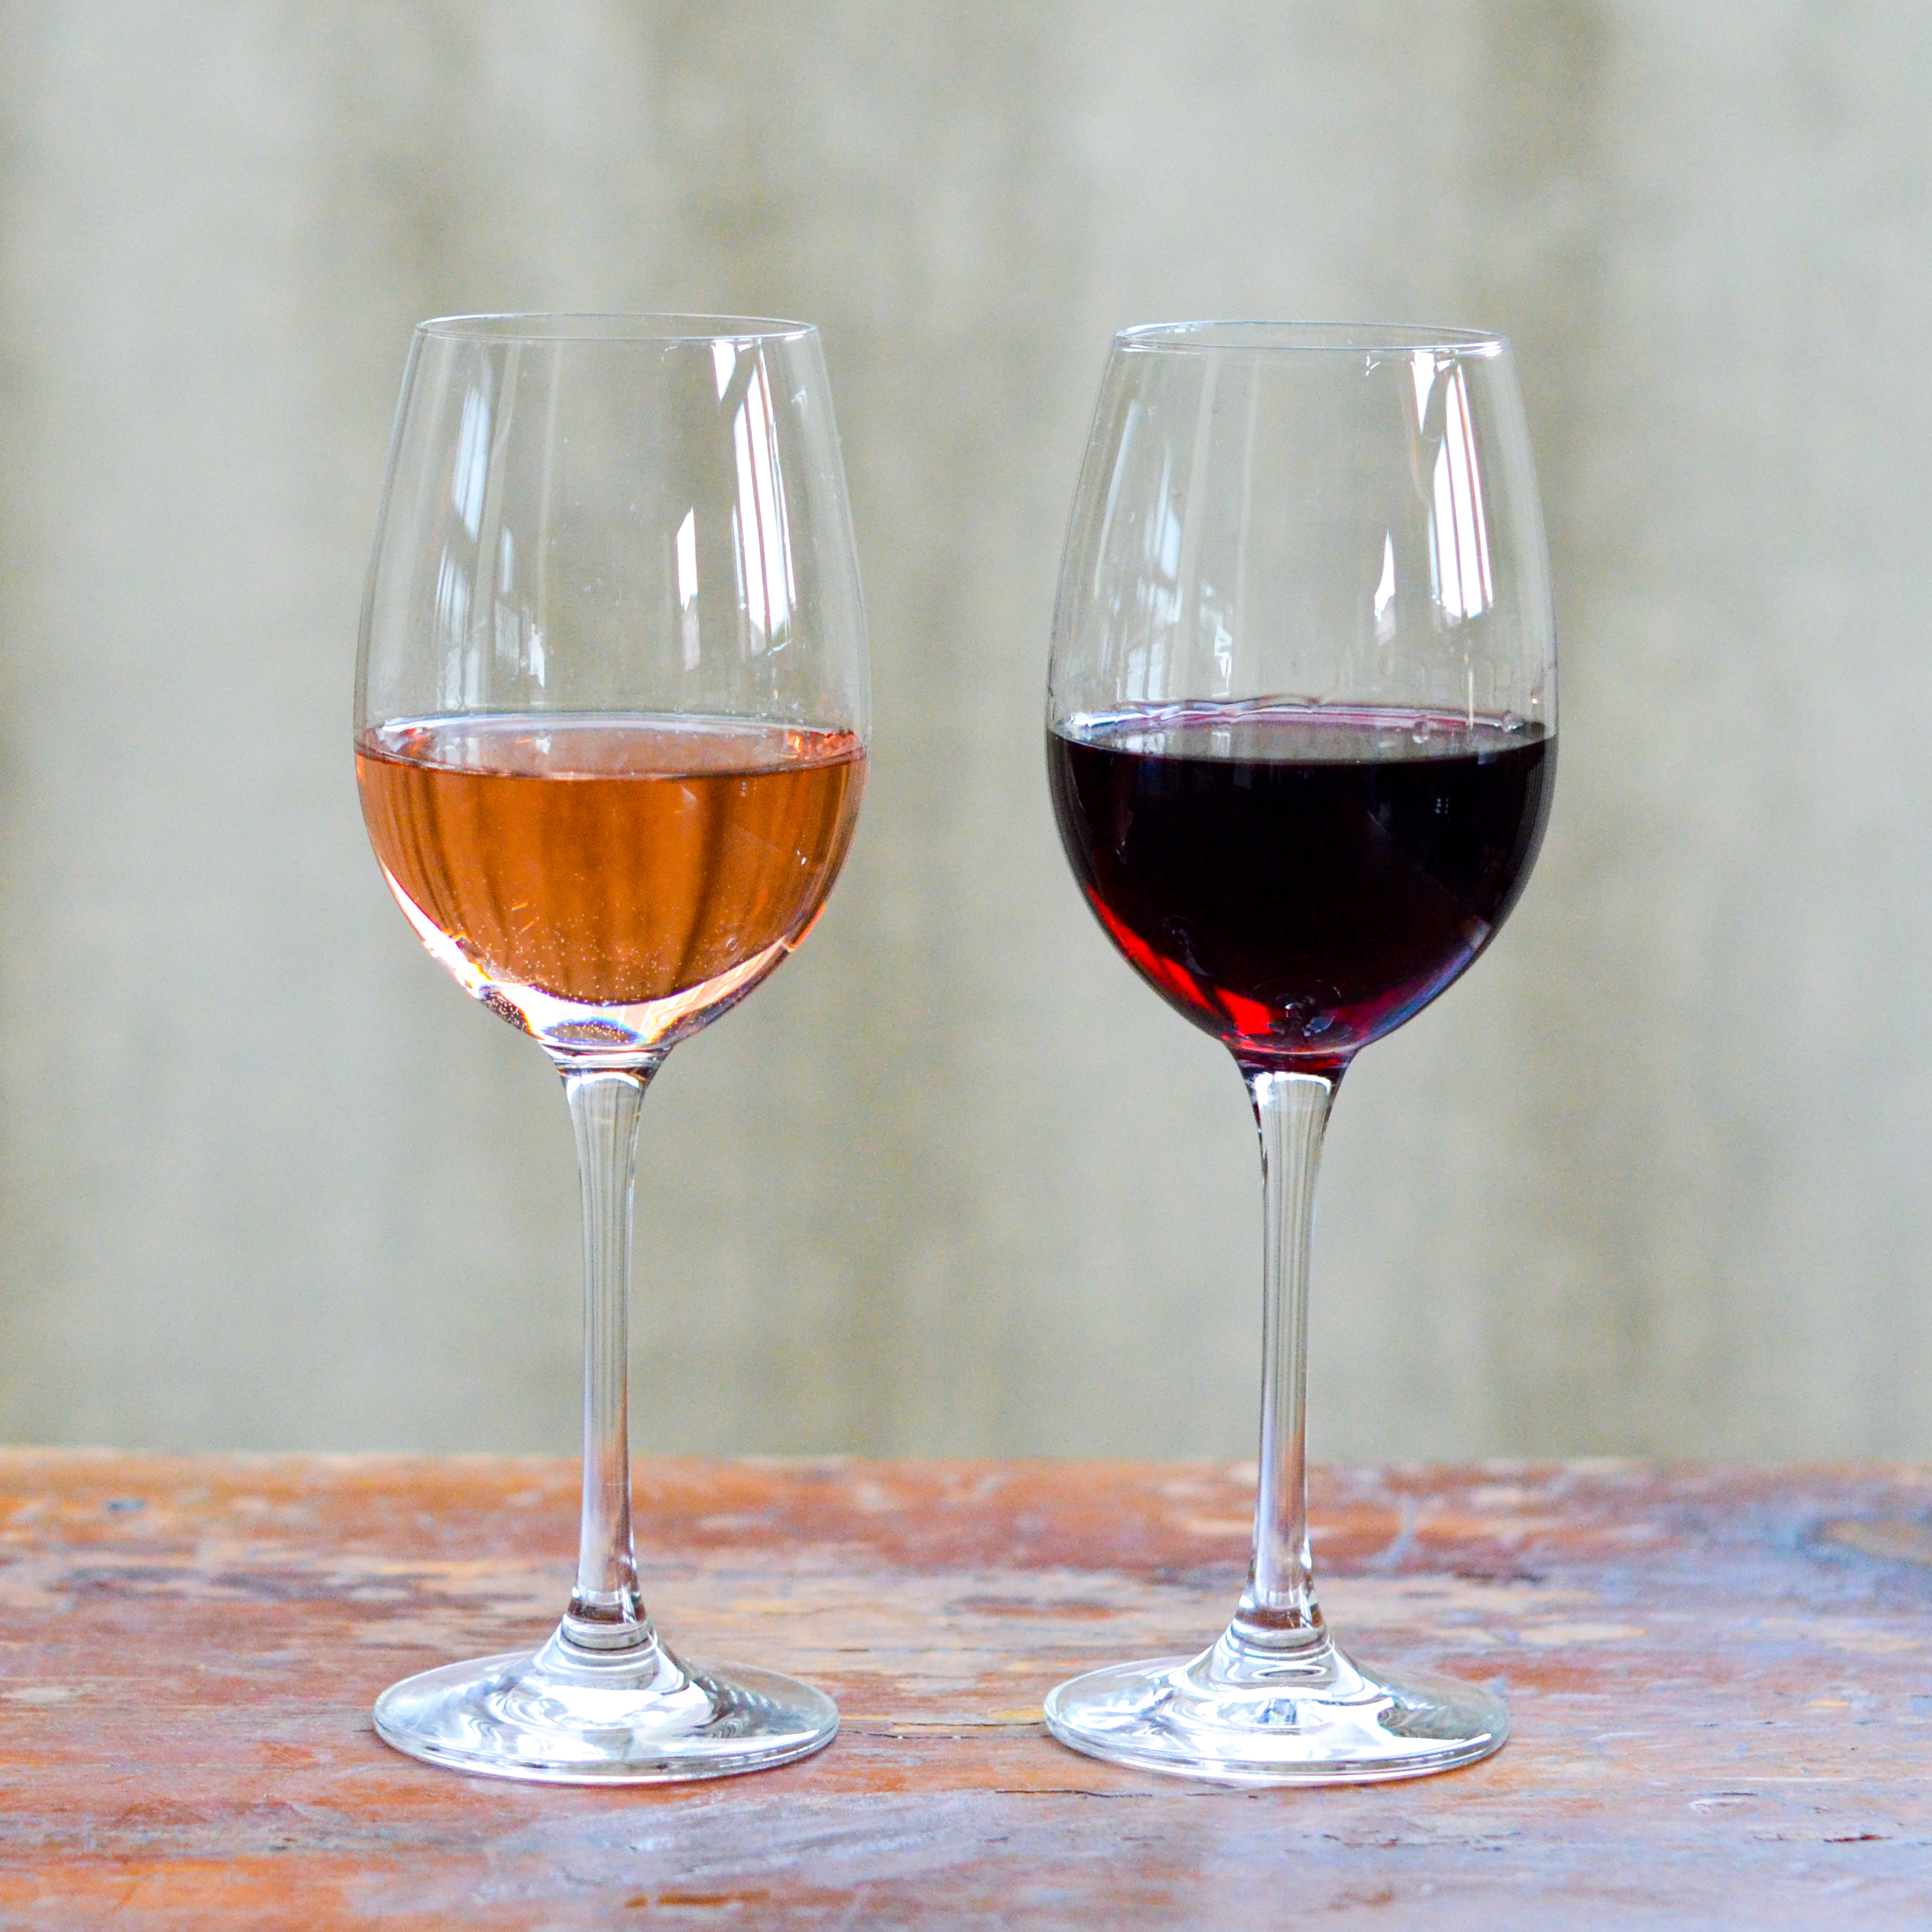 Two glasses of wine on a wooden table